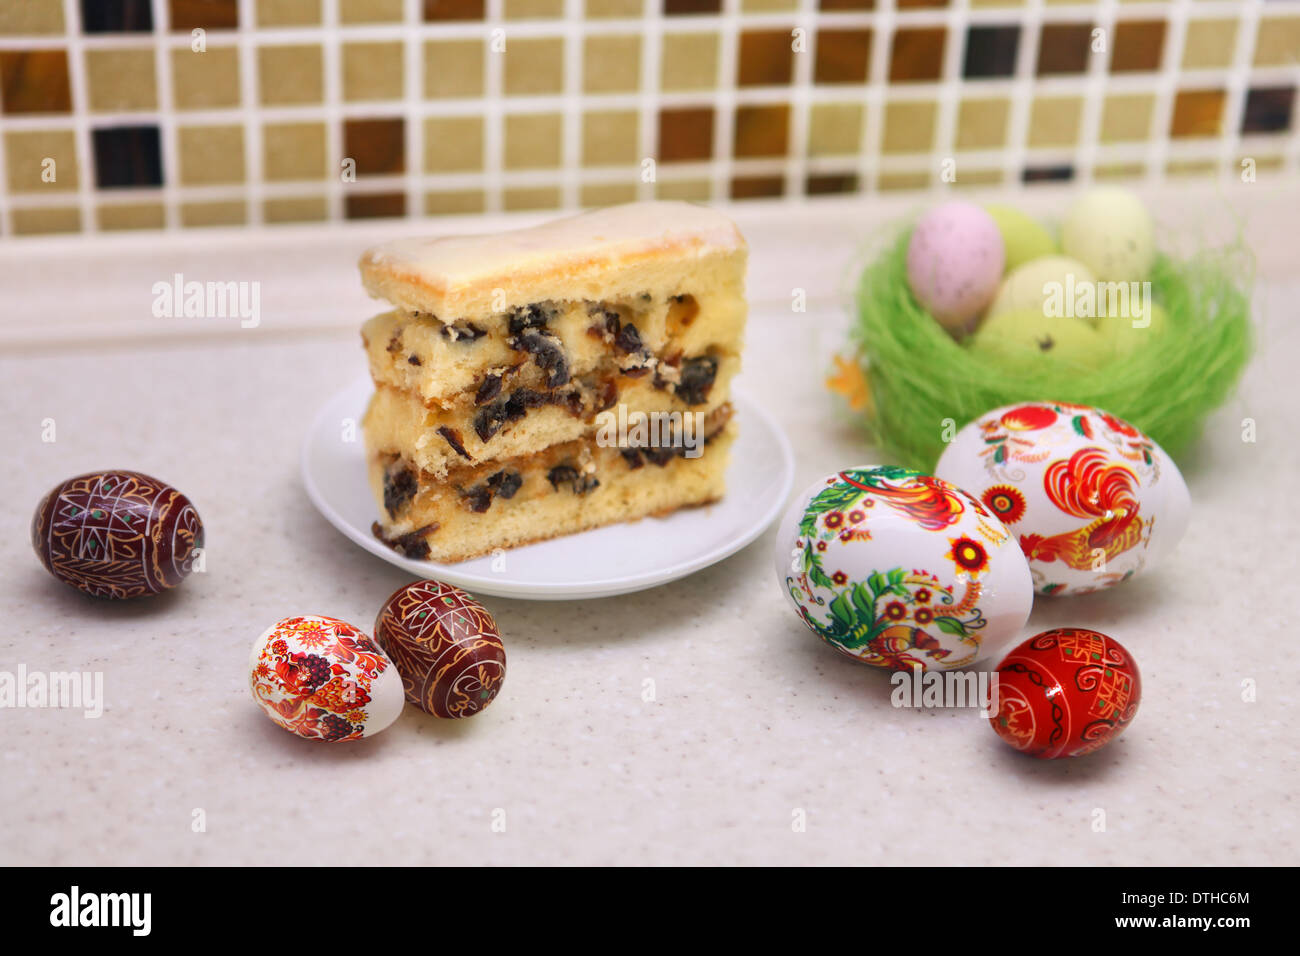 Painted Colorful Easter Eggs and patty cake - Stock Image